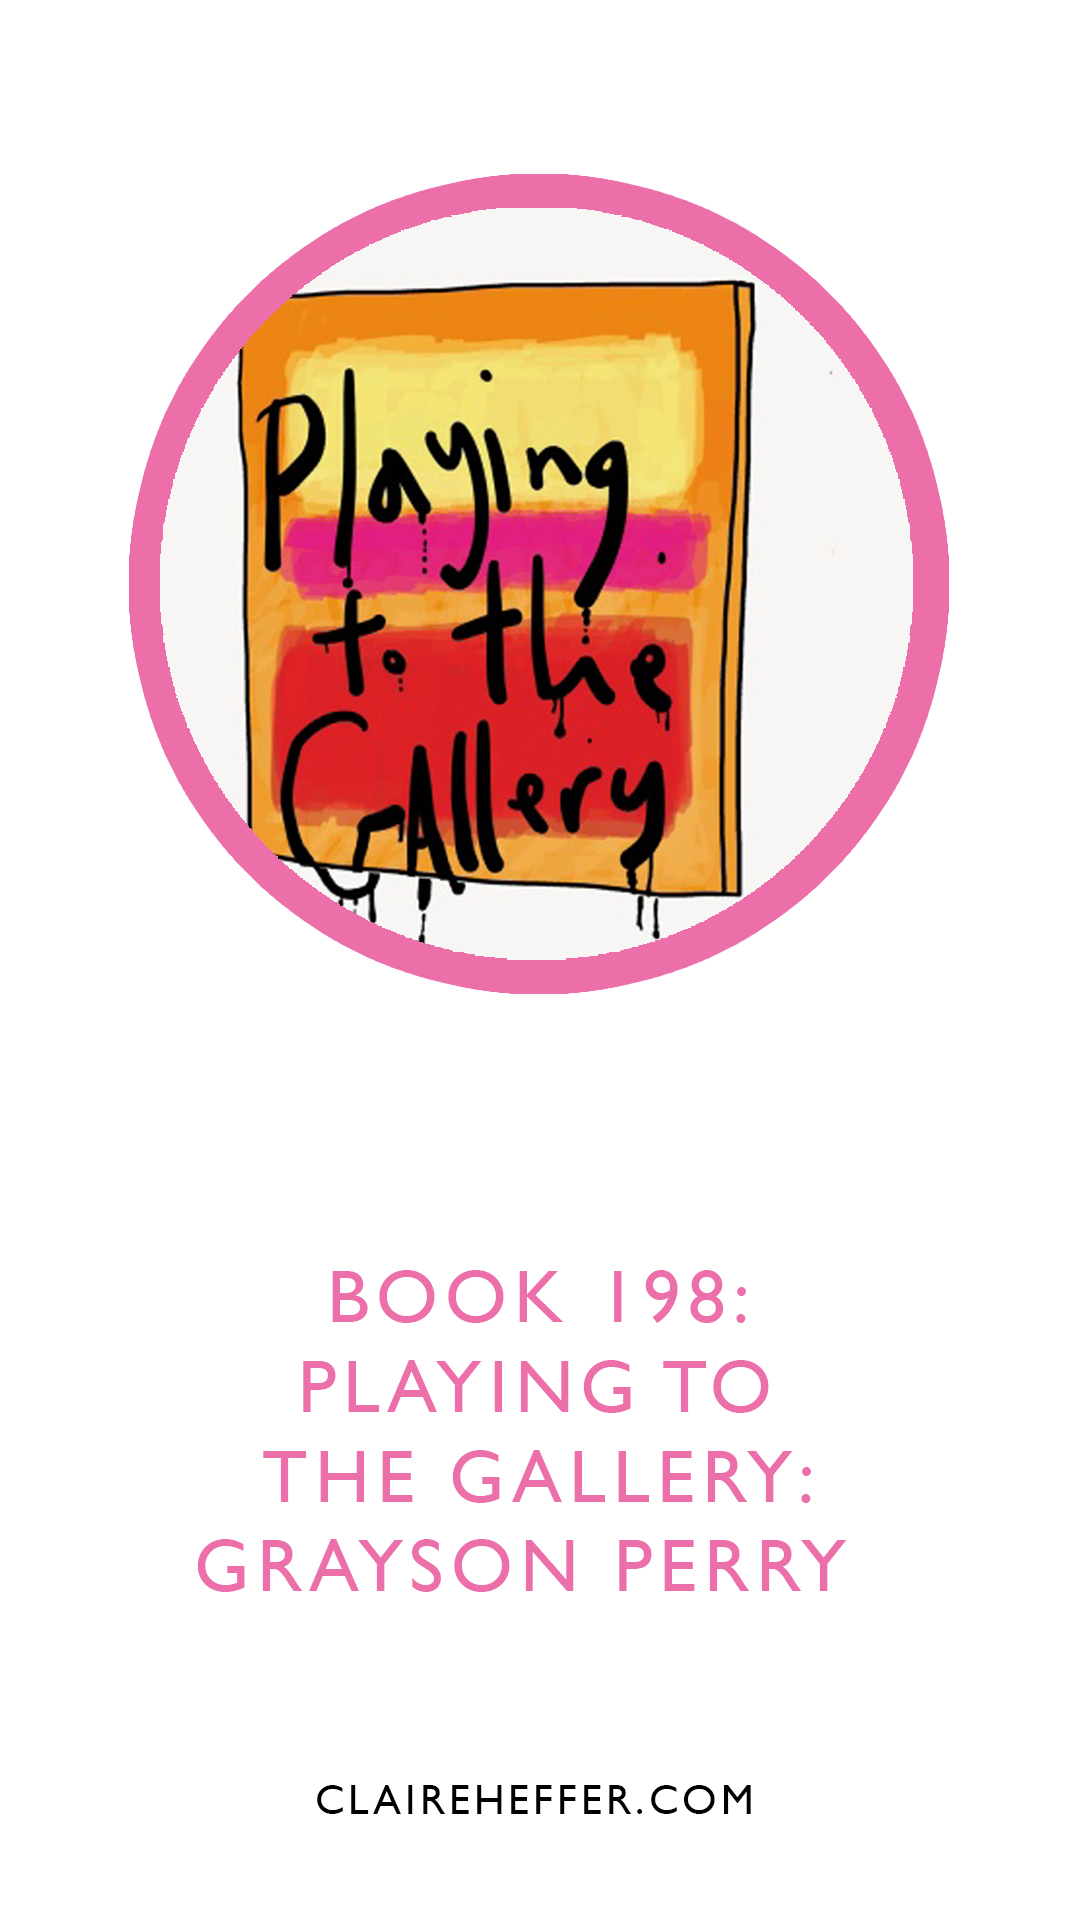 PLAYING TO THE GALLERY_GRAYSON PERRY_ART_ARTIST_PINTEREST_BOOK_BOOK REVIEW_MODERN ART_ARTGALLERY_POTTERY.jpg